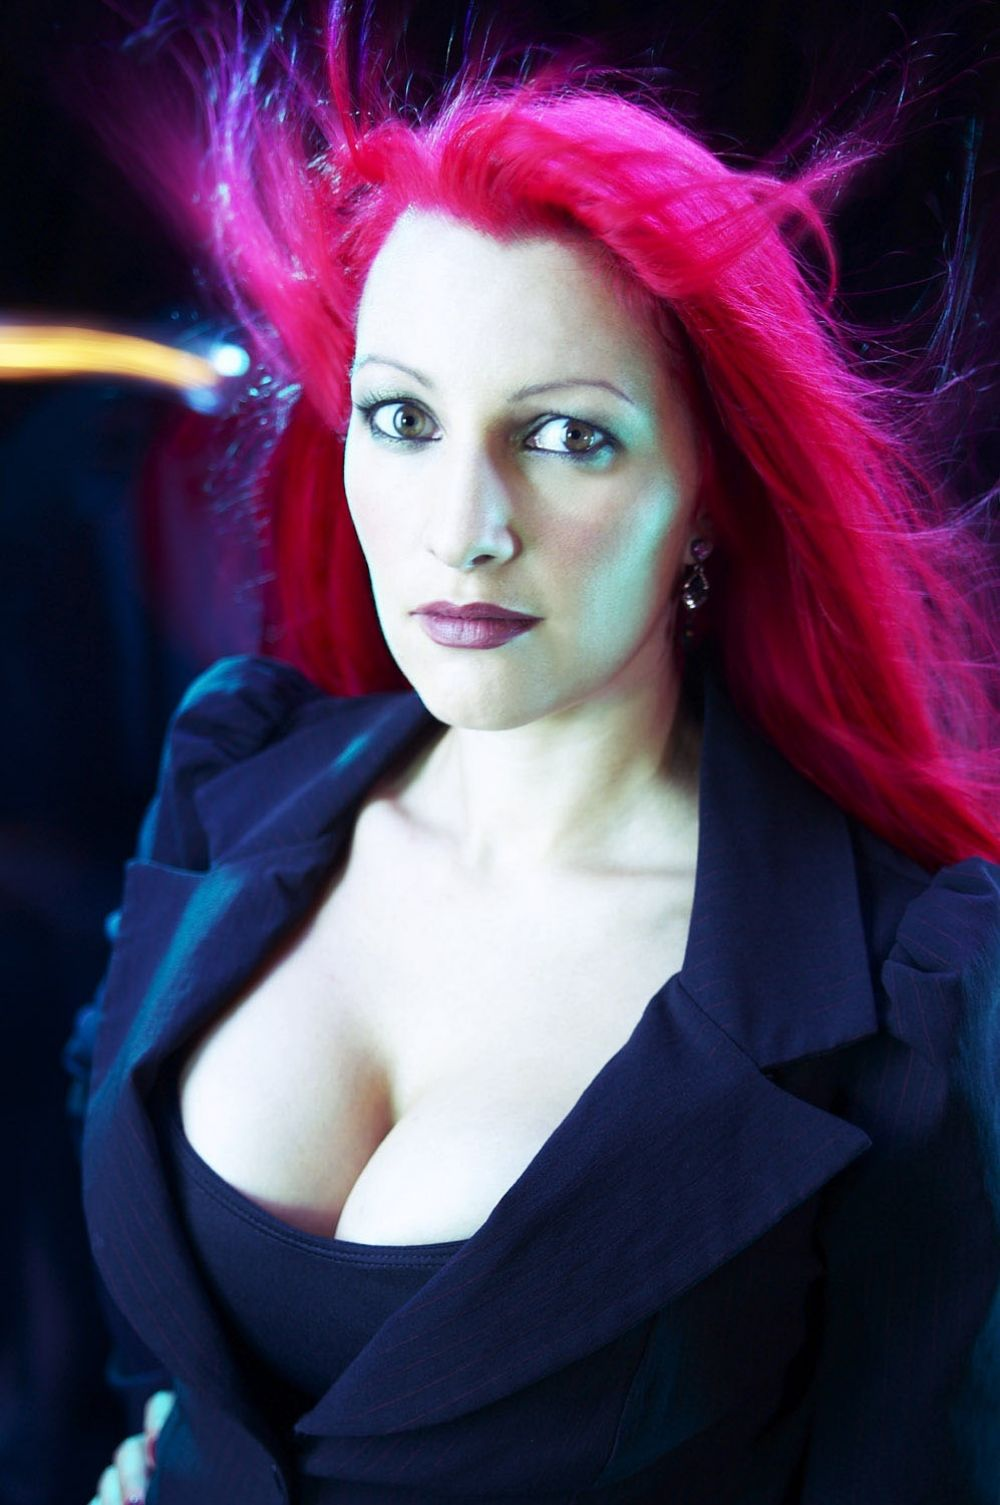 jane goldman 2015jane goldman imdb, jane goldman twitter, jane goldman forbes, jane goldman, jane goldman net worth, jane goldman jonathan ross, jane goldman 2015, jane goldman kingsman, jane goldman wiki, jane goldman instagram, jane goldman stardust, jane goldman real estate, jane goldman affair, jane goldman breasts, jane goldman glasgow, jane goldman hot, jane goldman diet, jane goldman weight loss, jane goldman jewish, jane goldman palm beach